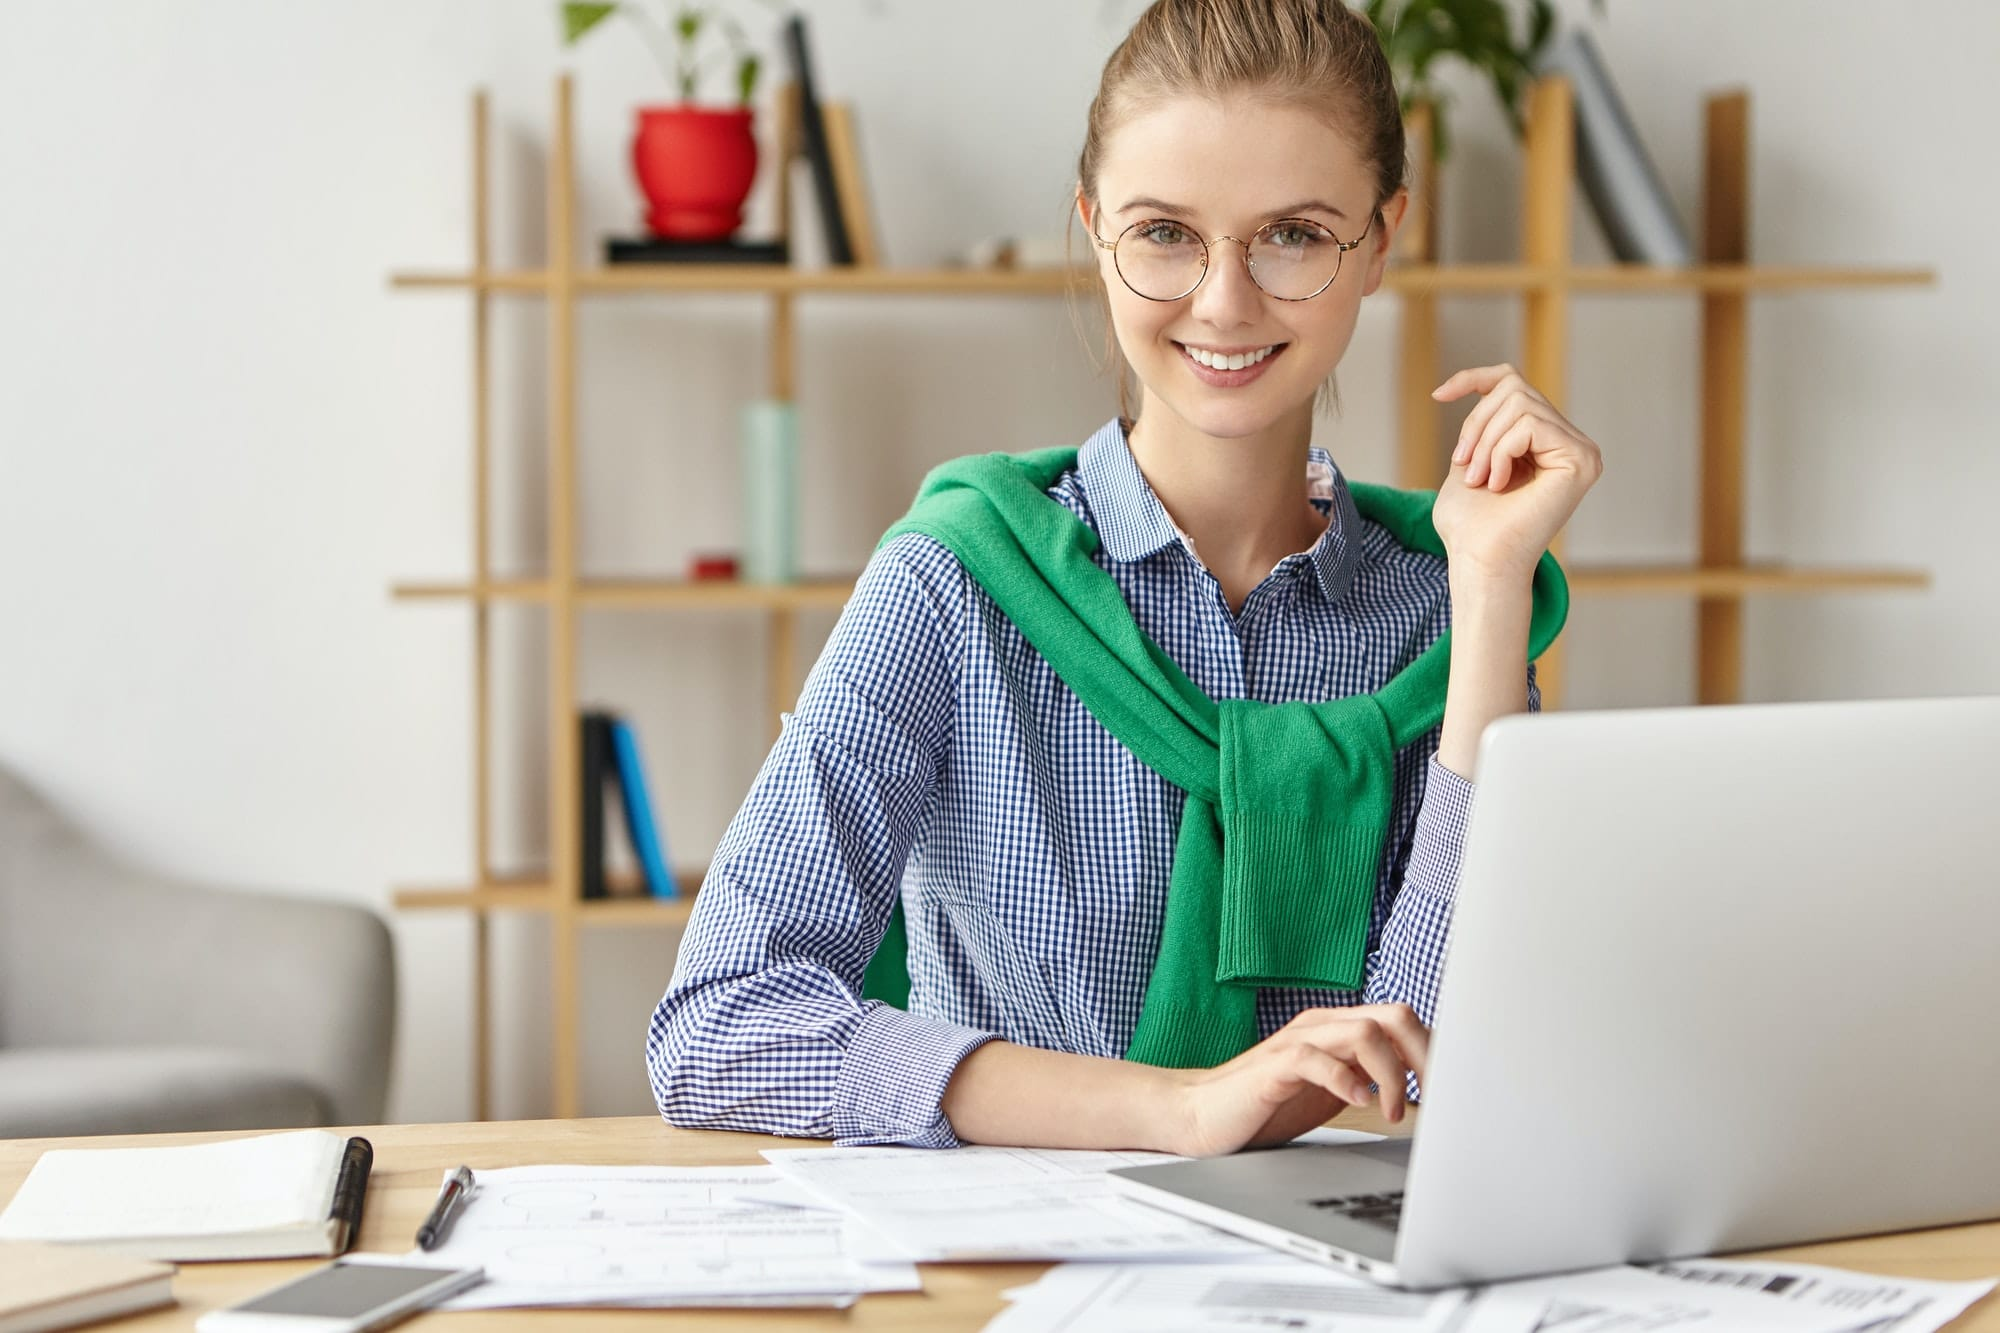 successful freelancer works at home remotely uses modern gadgets and free wifi connection professi